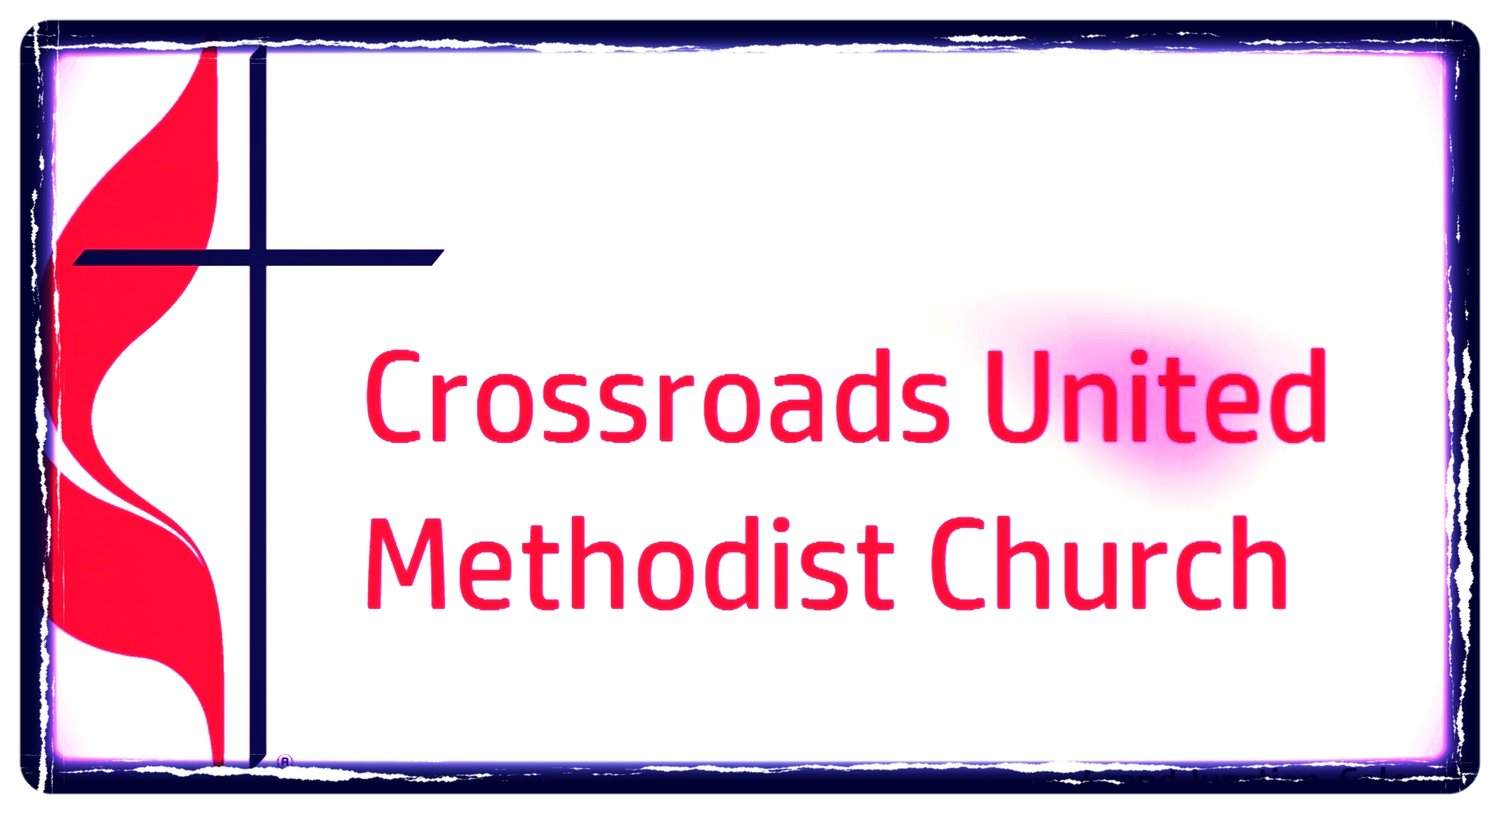 Crossroads United Methodist Church